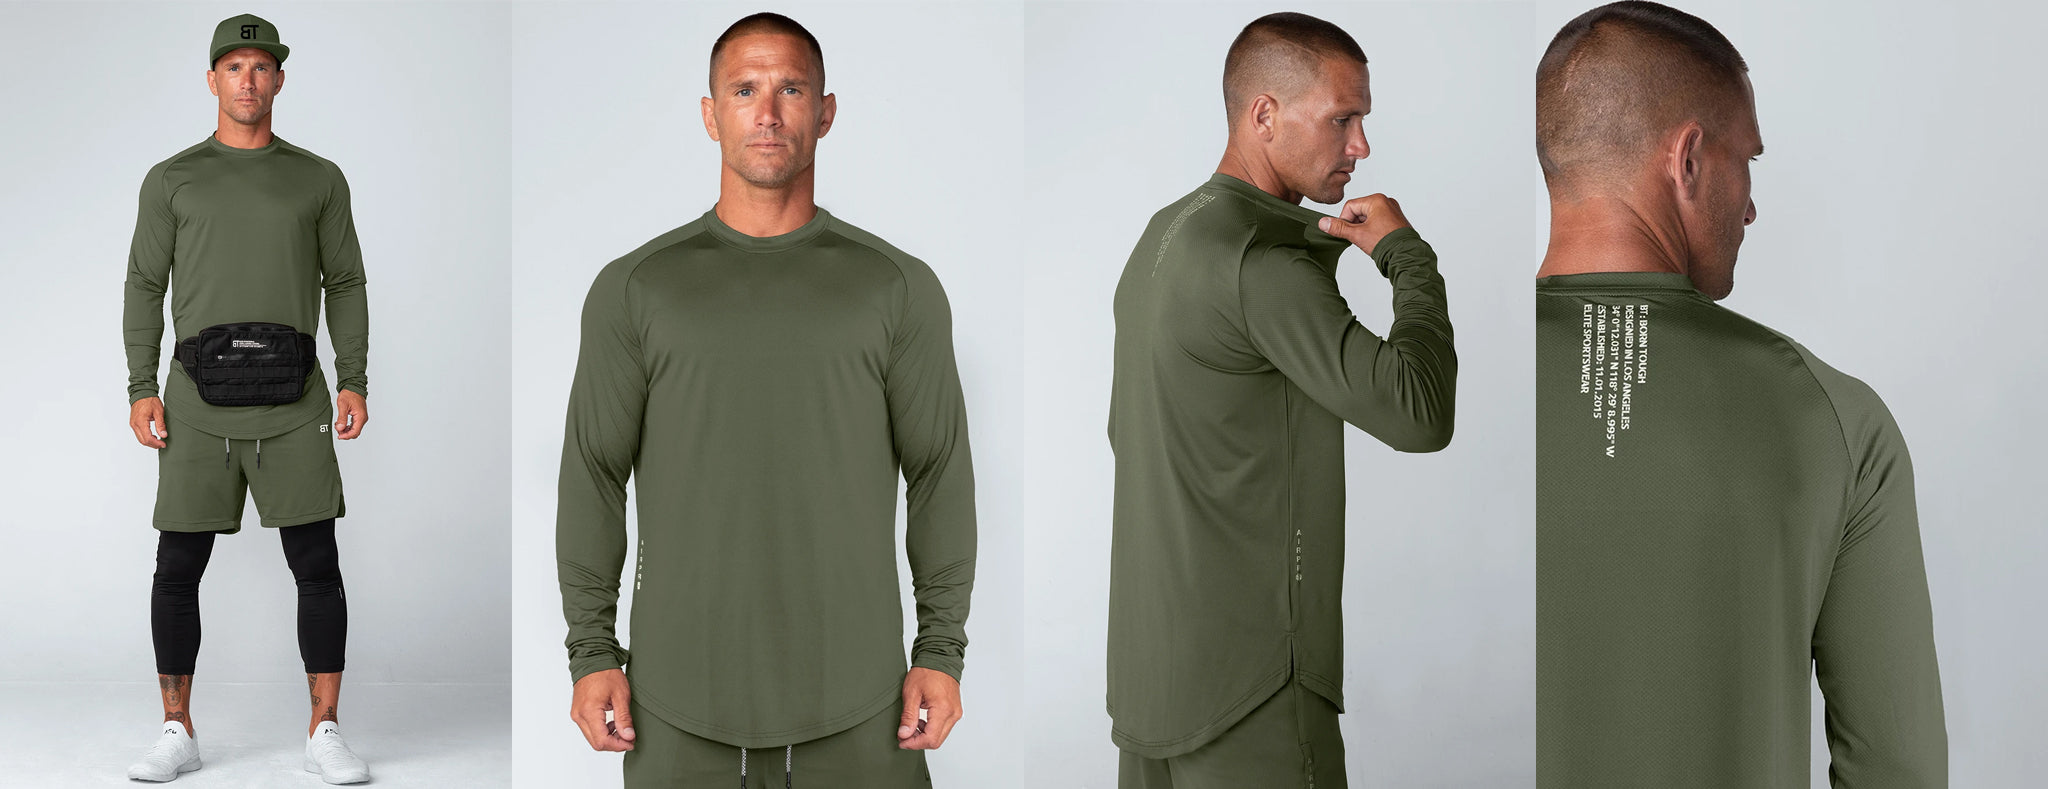 Born Tough Air Pro Long Sleeve Fitted Tee Shirt For Men